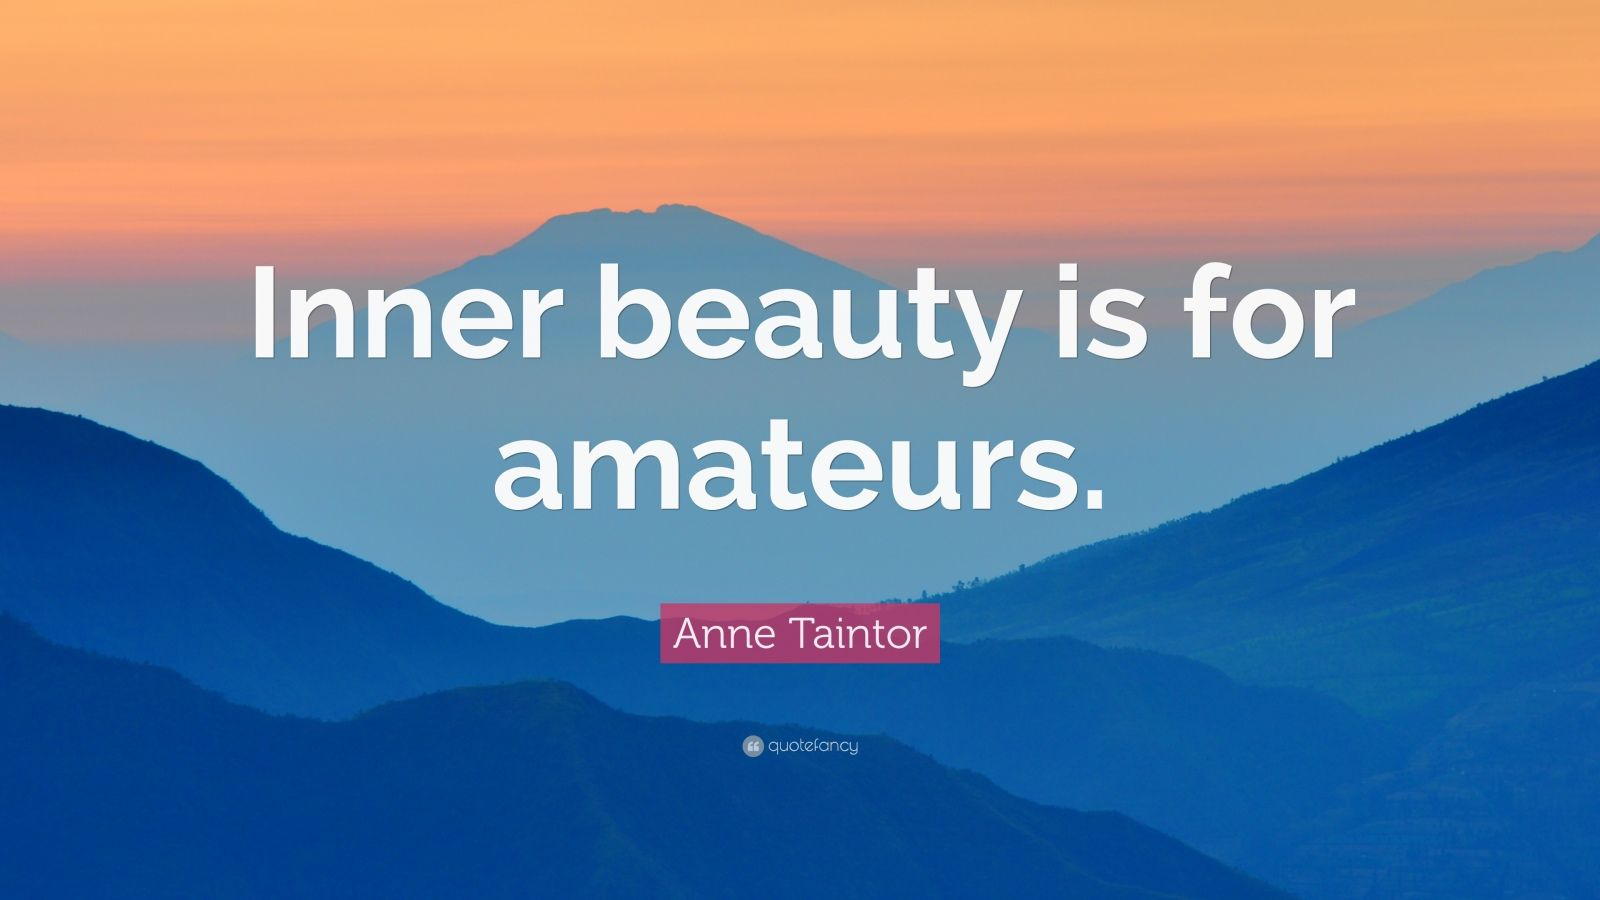 Anne Taintor Quotes 7 Wallpapers Quotefancy